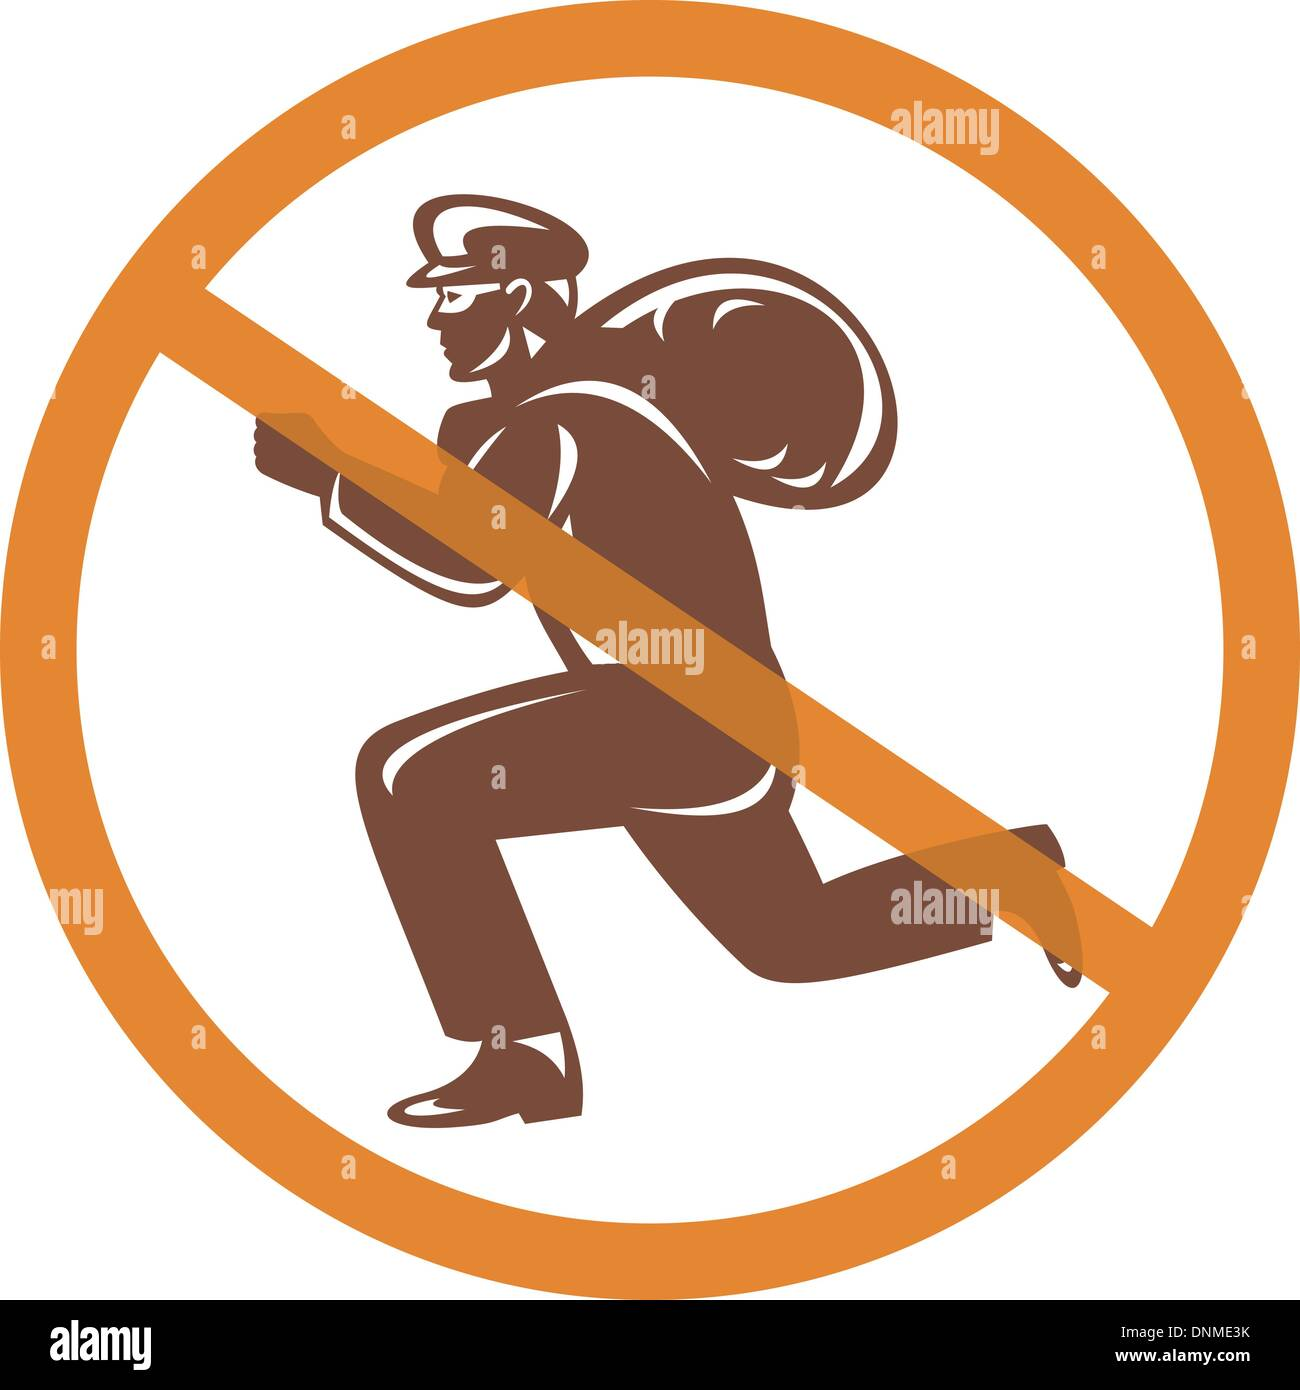 illustration of a Sign of a burglar or thief running with loot inside a crossed circle - Stock Vector